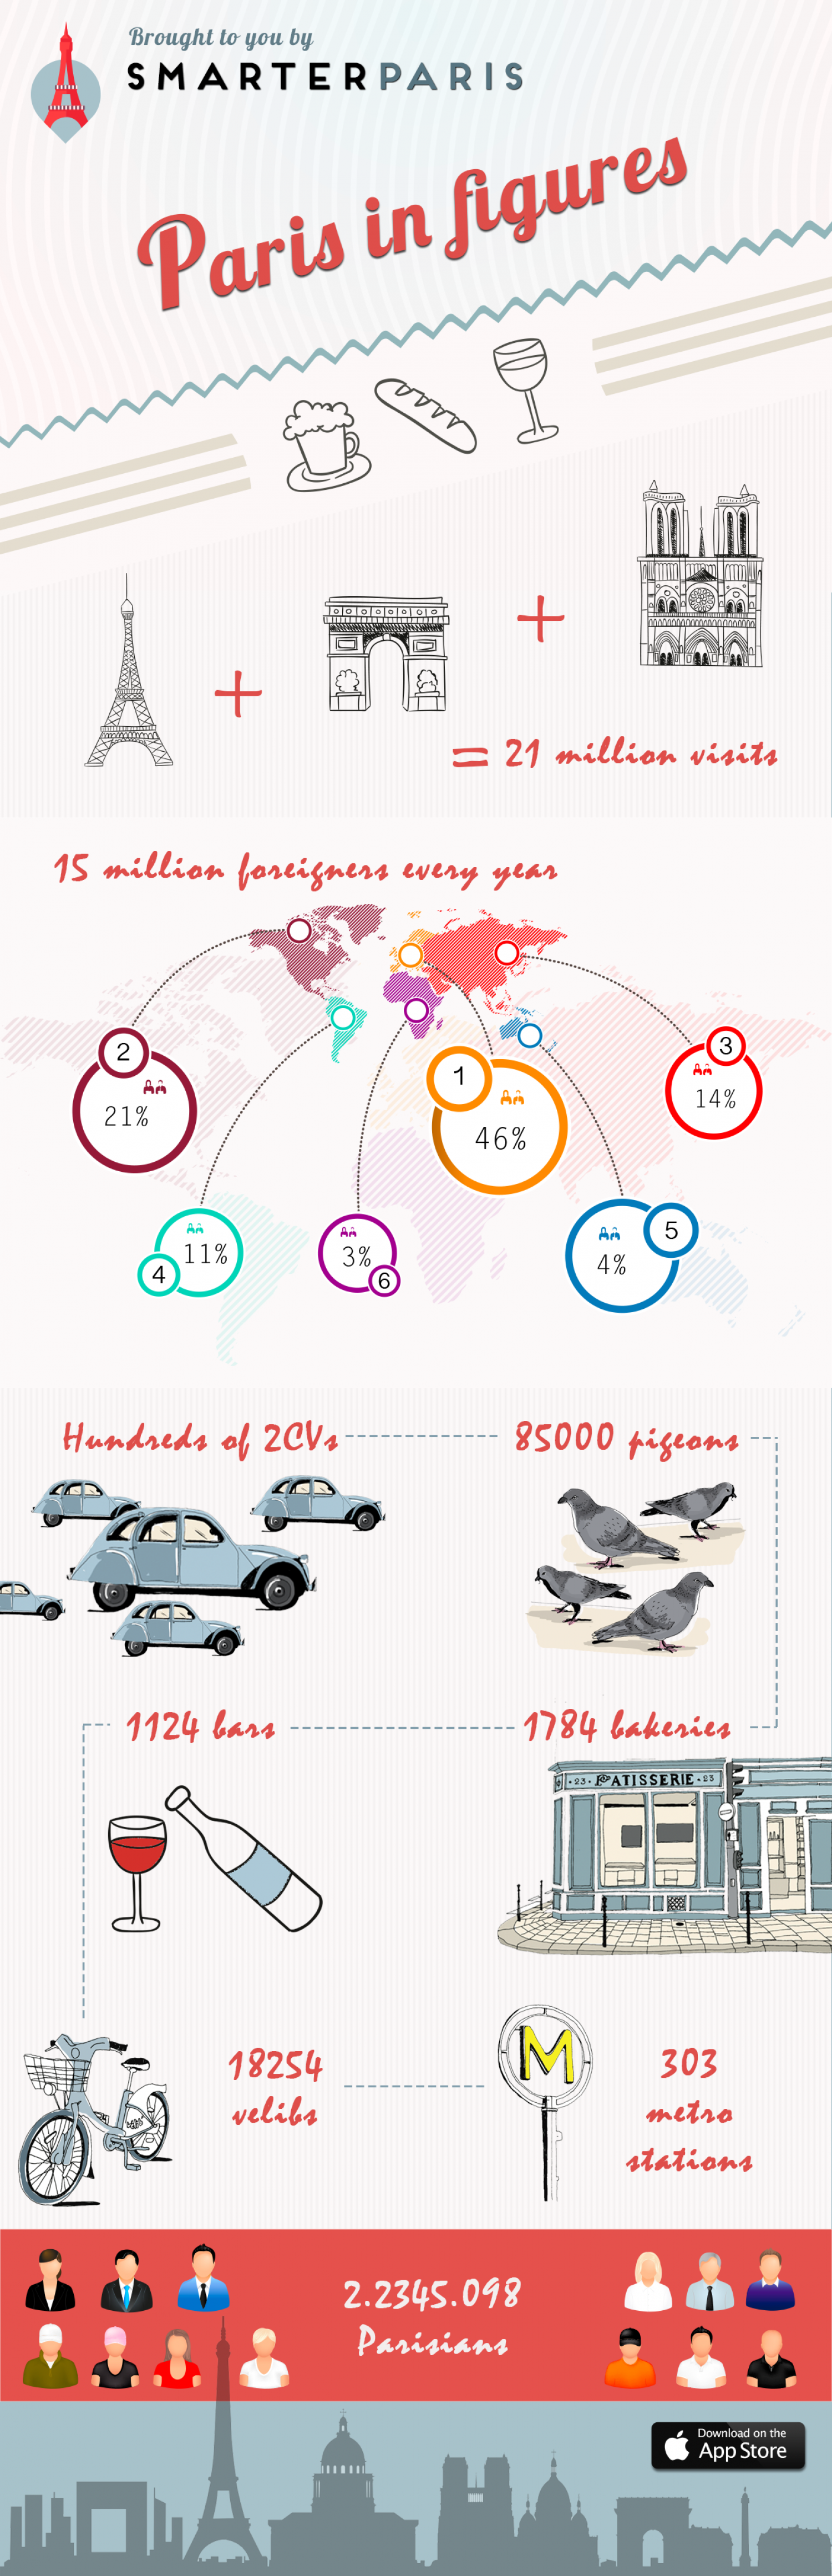 Paris In Figures Infographic